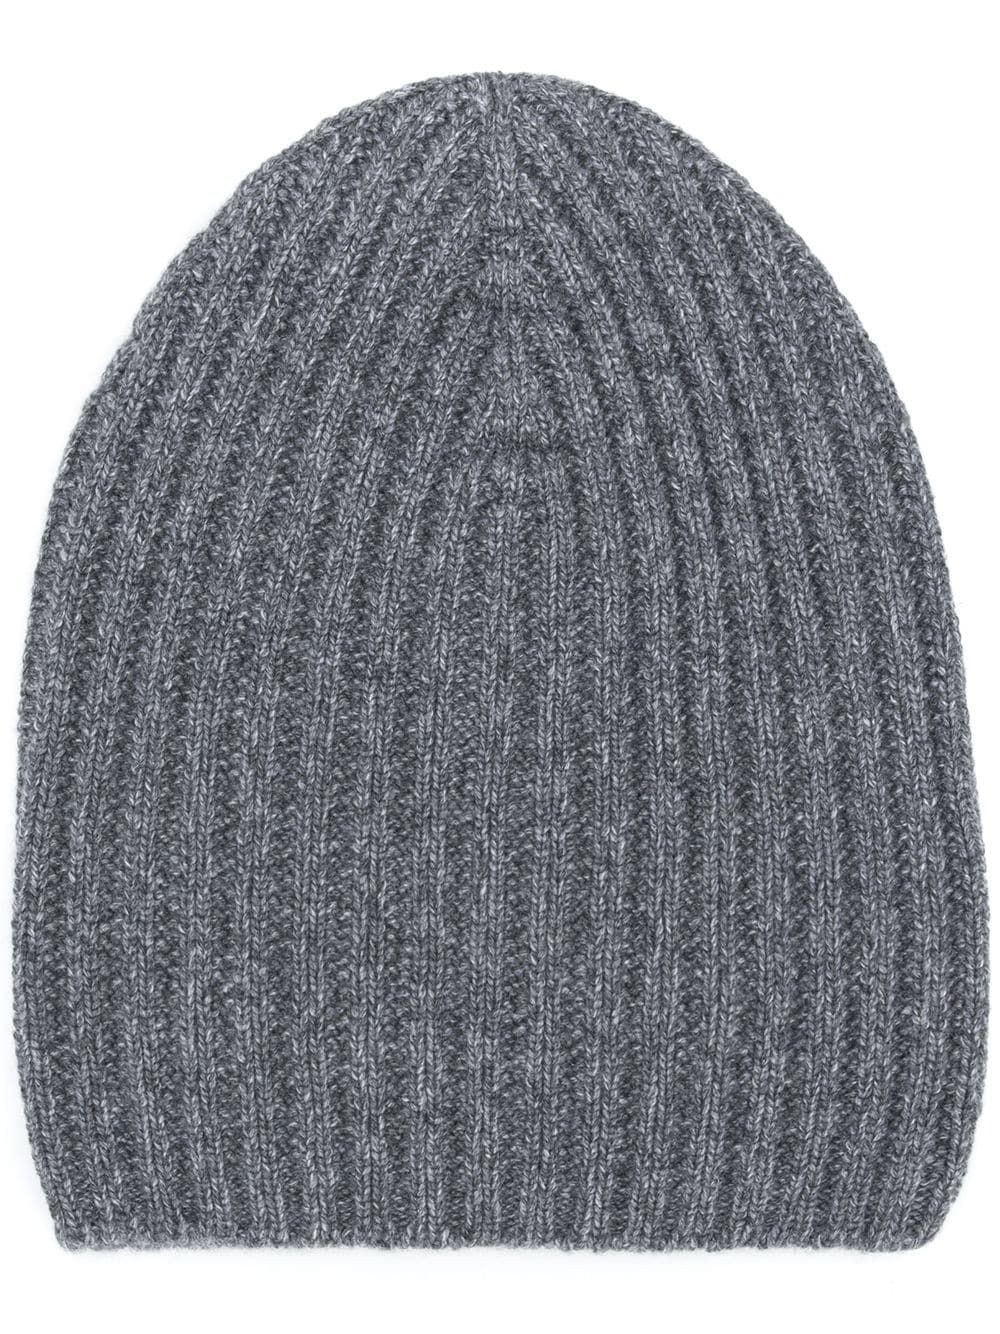 534c6815 Barrie ribbed-knit cashmere beanie - Grey in 2019 | Products ...